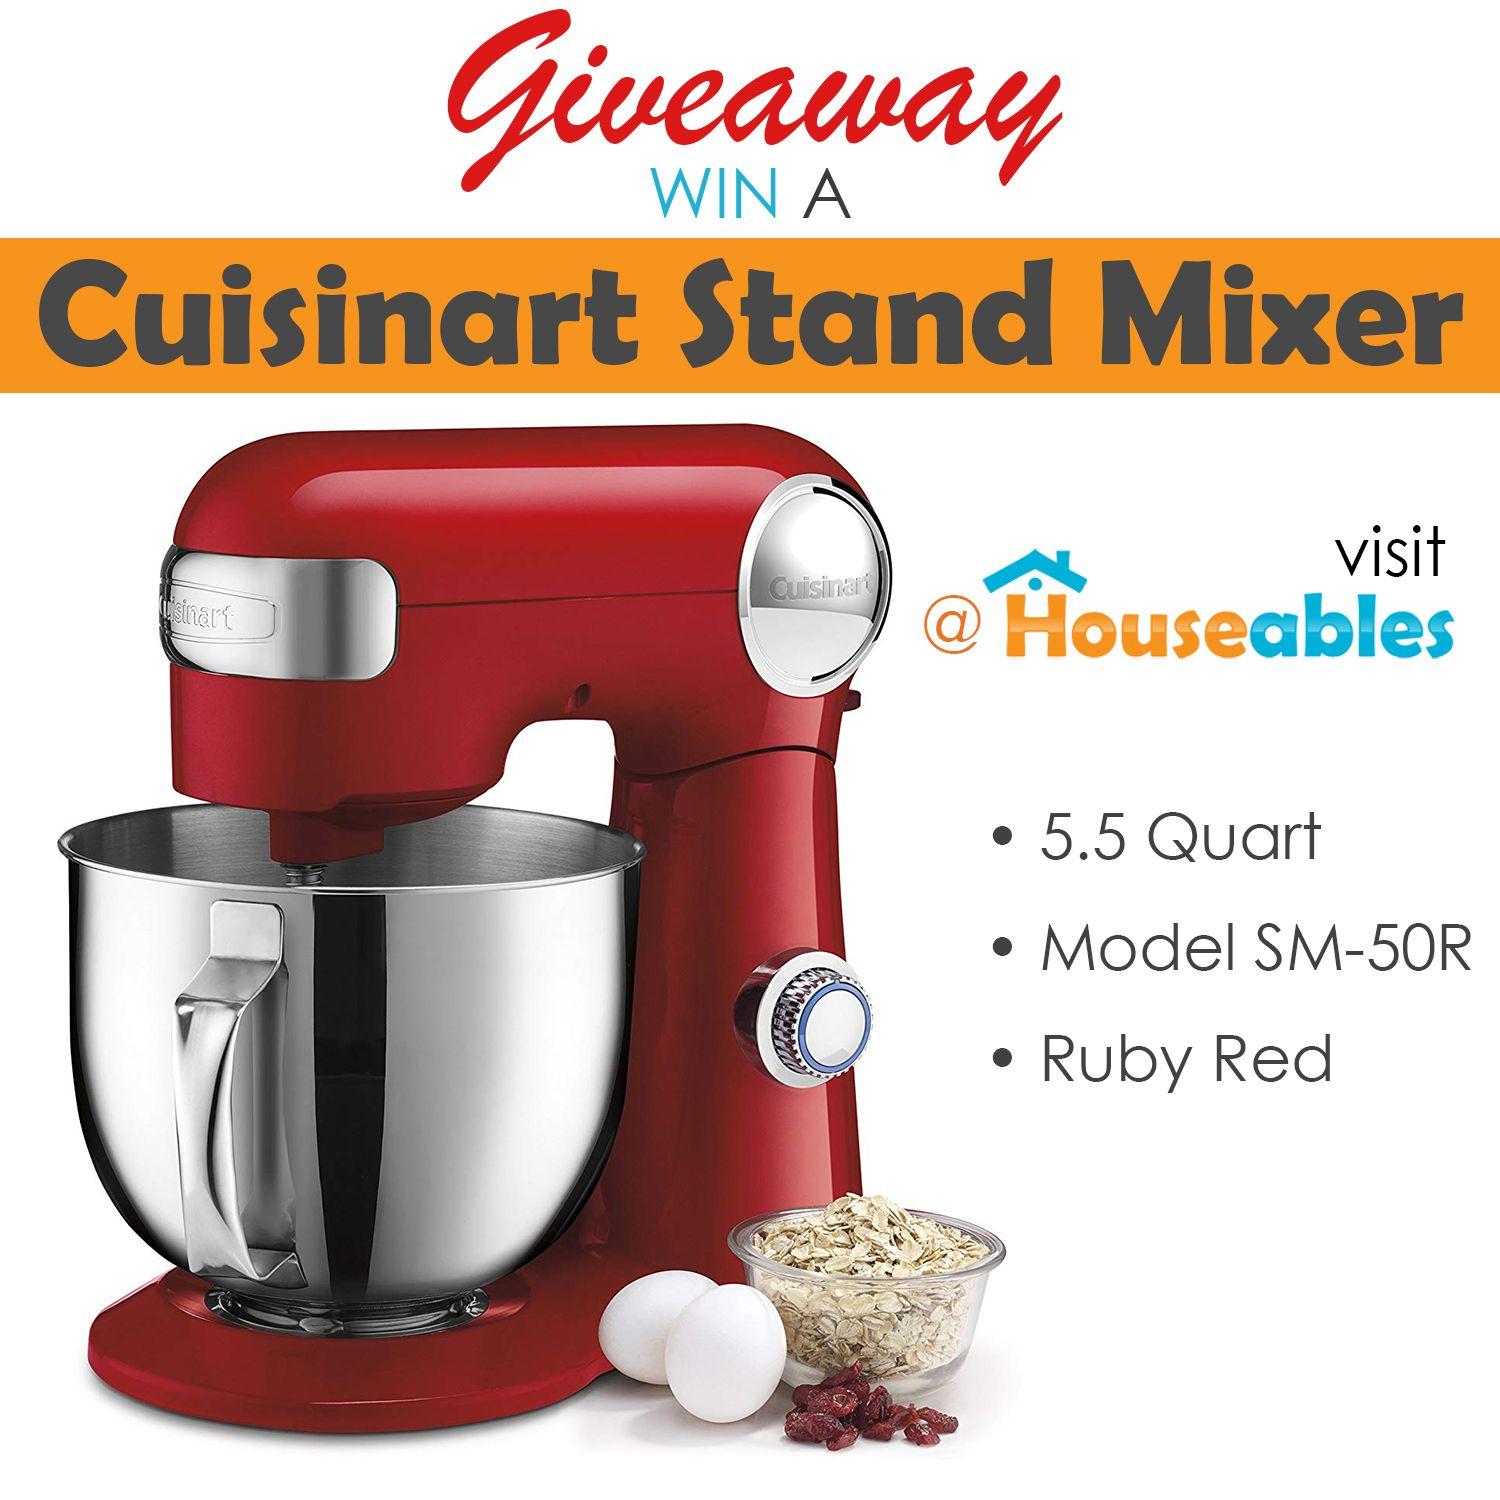 GIVEAWAY: Cuisinart Stand Mixer in 2020 | Mixer, Stand ...